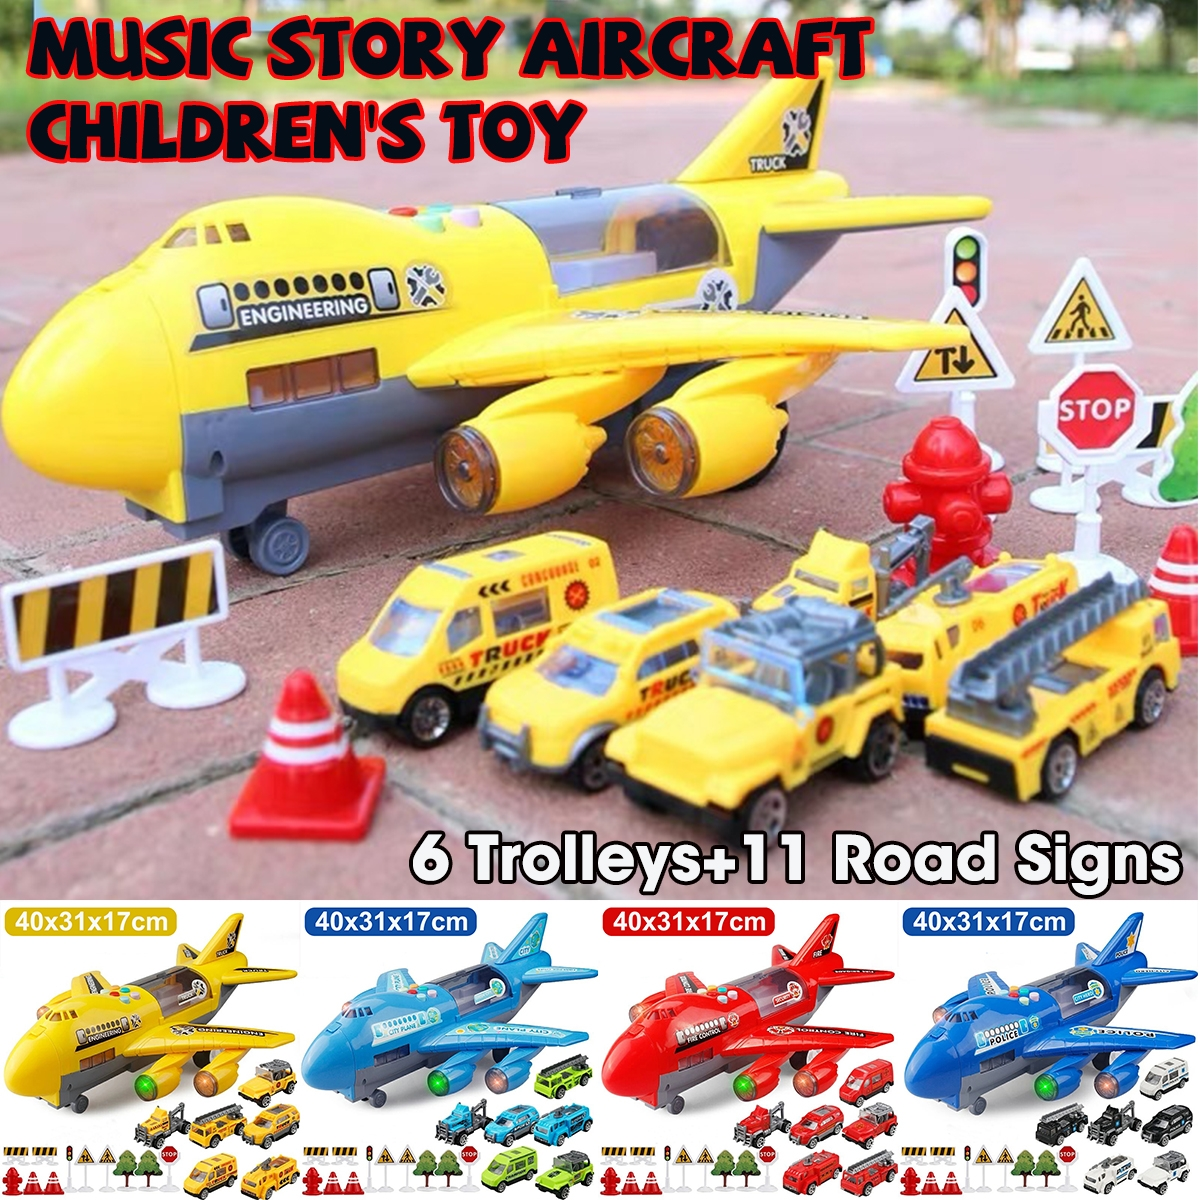 Music Story Simulation Track Inertia Children's Toy Aircraft Large Size Passenger Plane Kids Airliner Toys